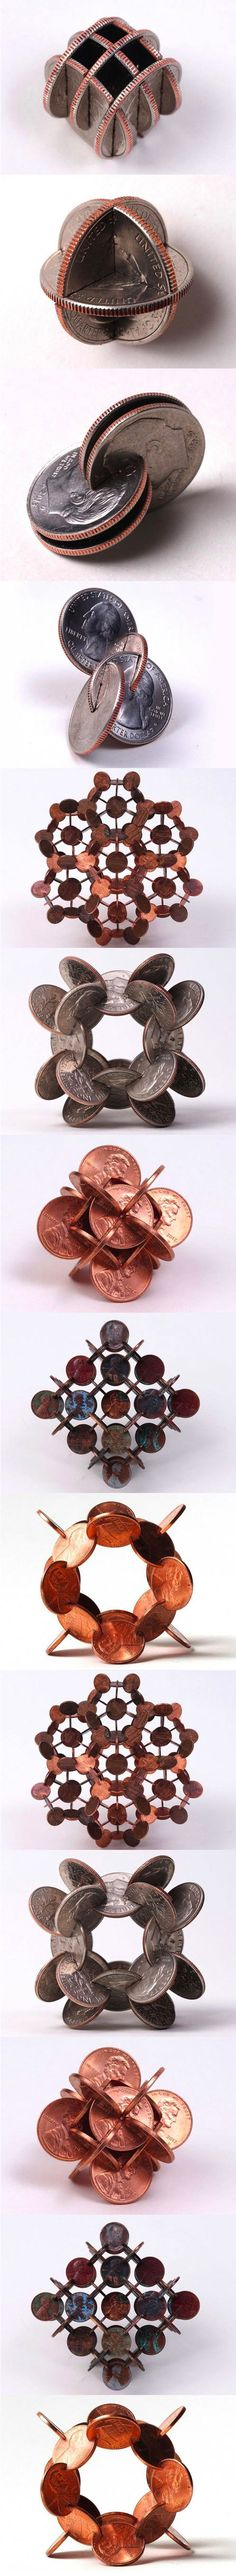 Art with coins.